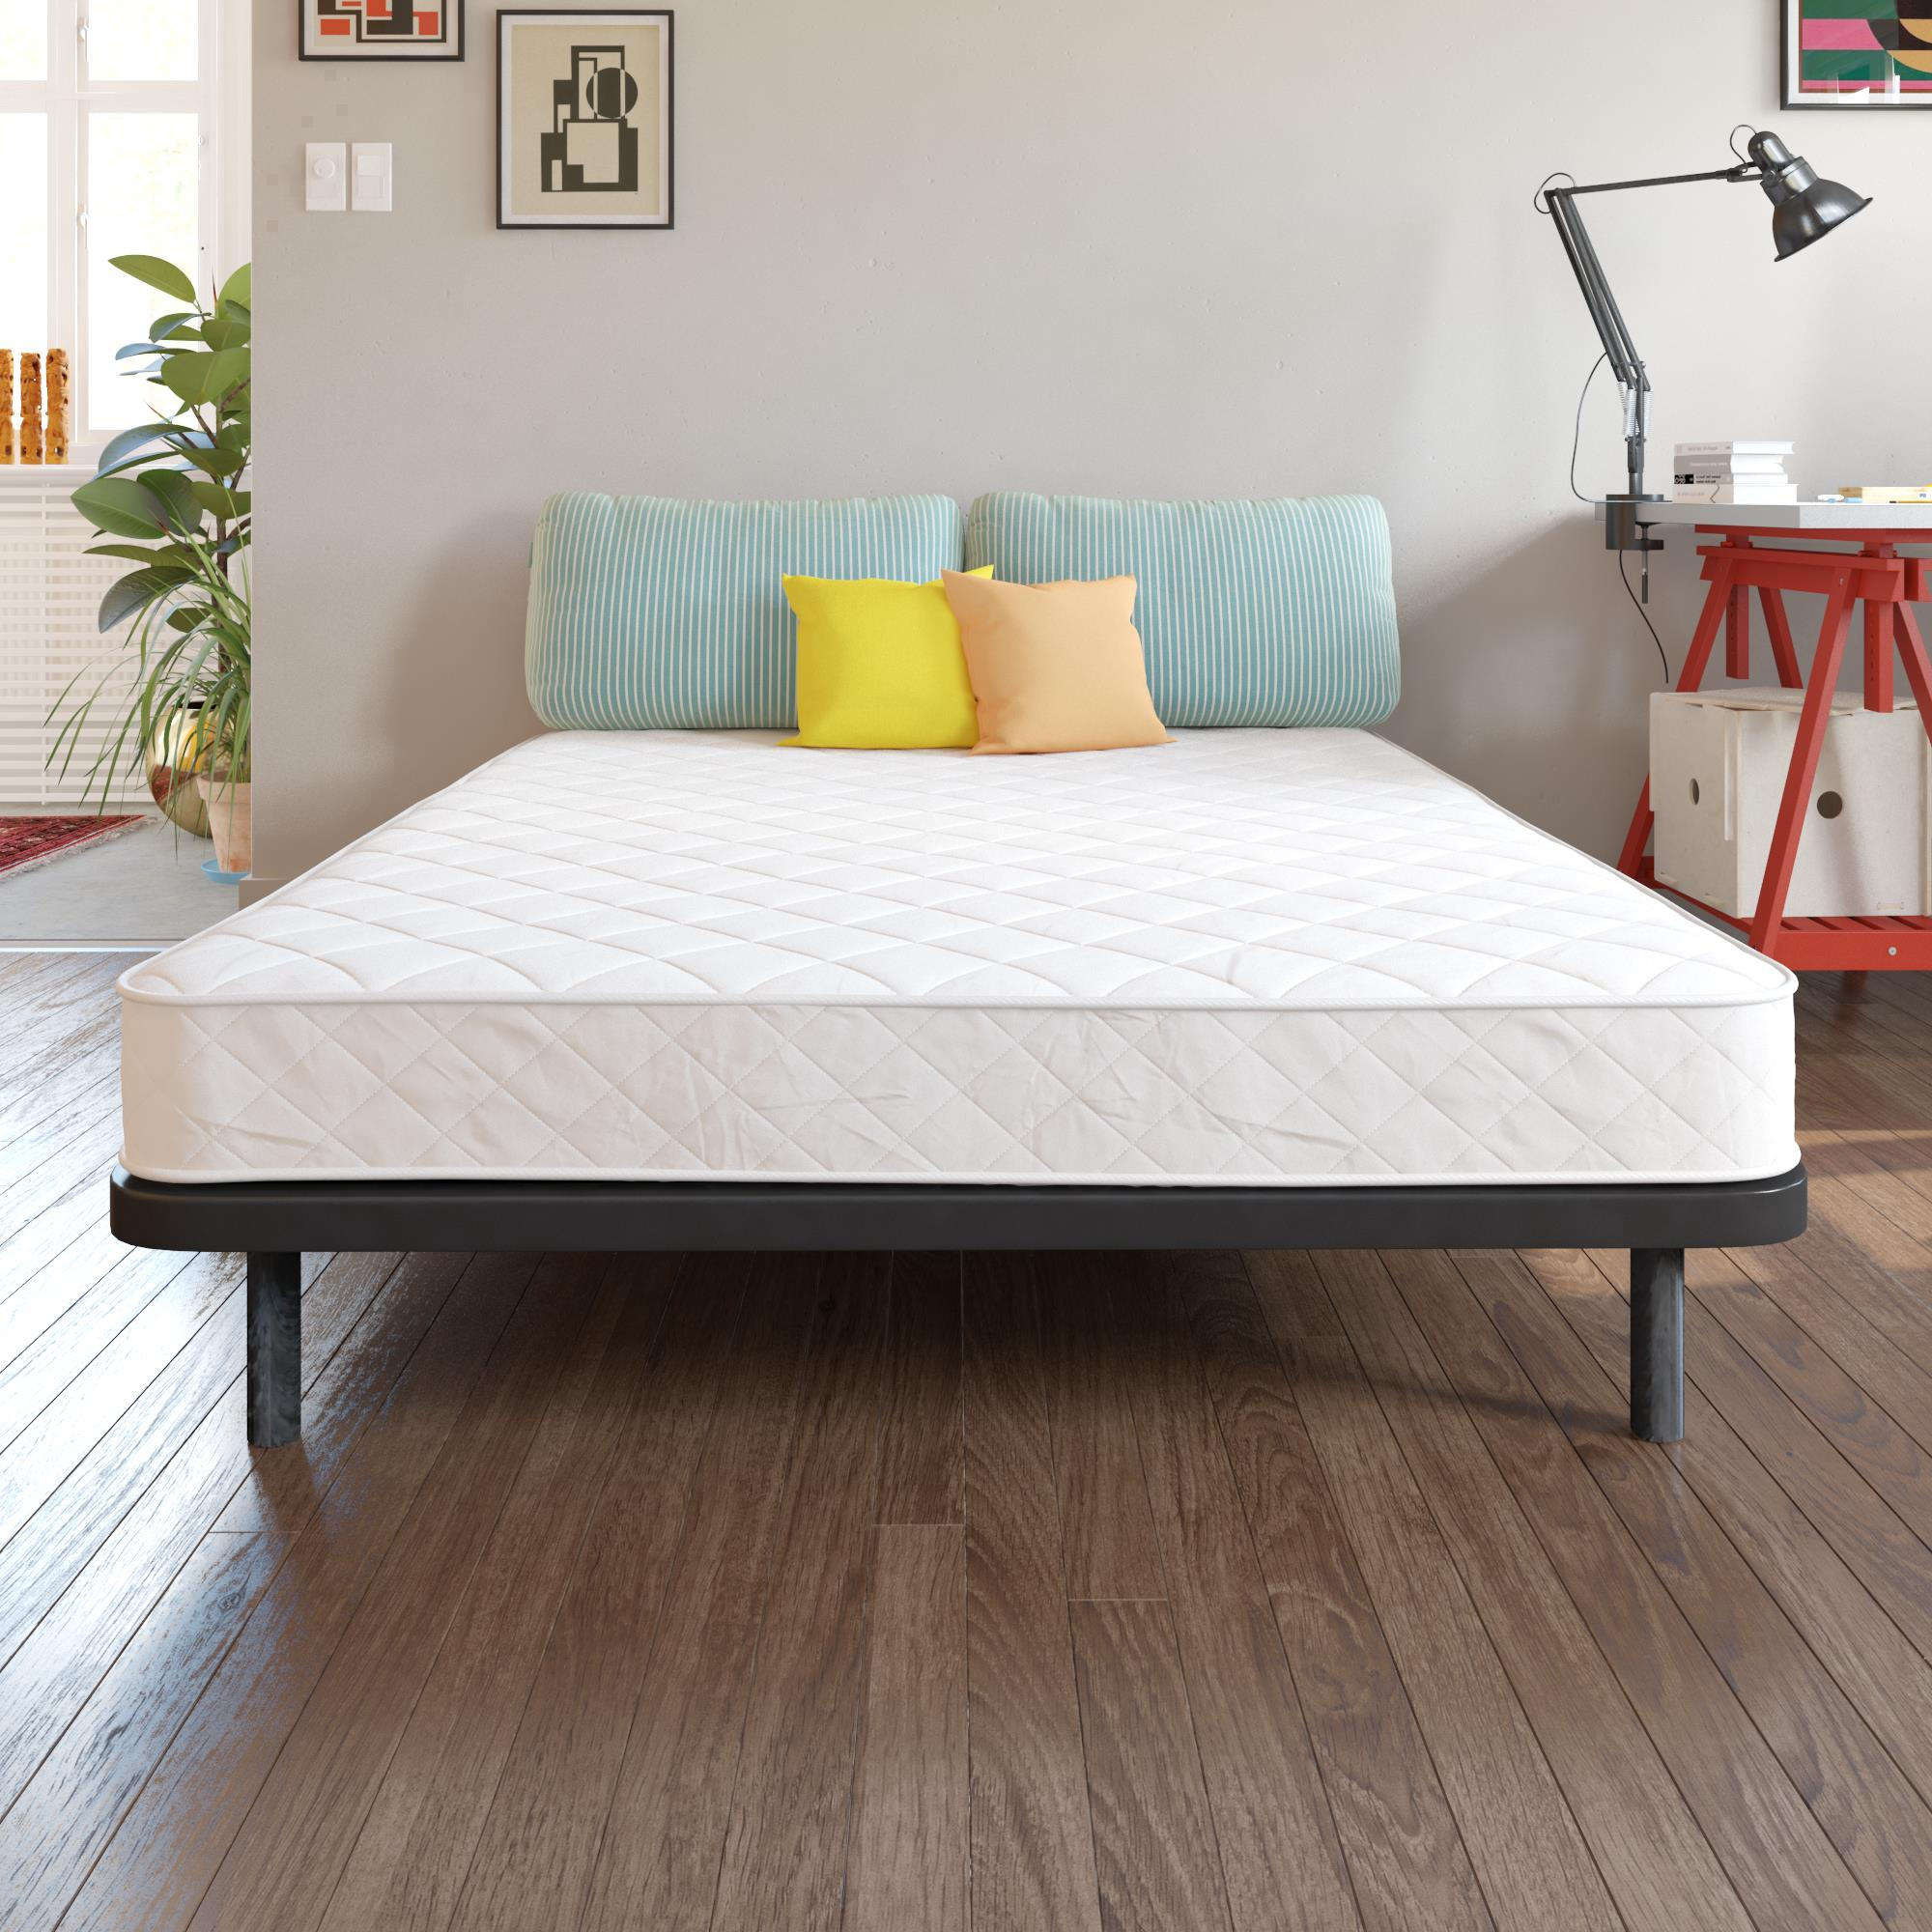 signature sleep choice 6 inch queen coil mattress. Black Bedroom Furniture Sets. Home Design Ideas